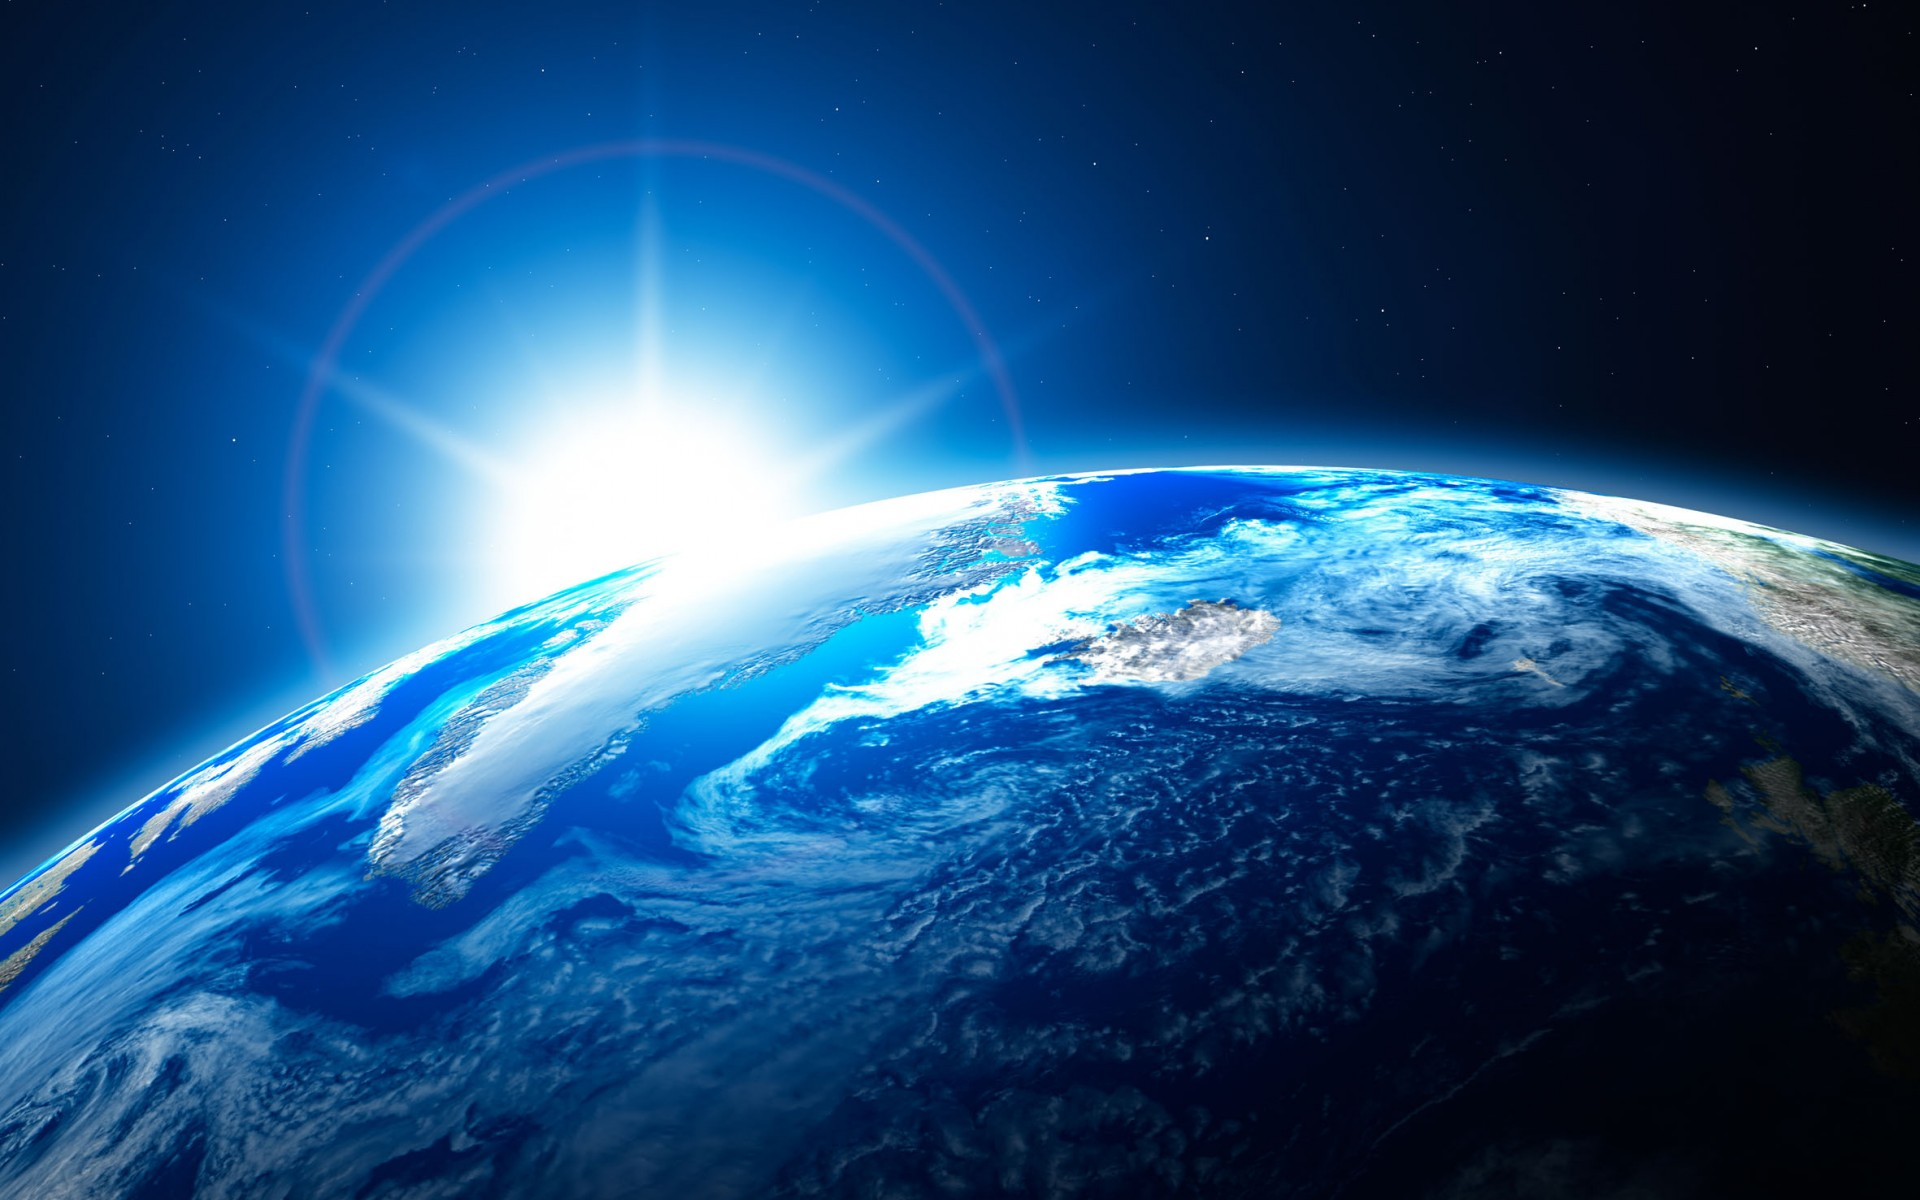 planet Earth light clouds ocean landscapes stars wallpaper background 1920x1200